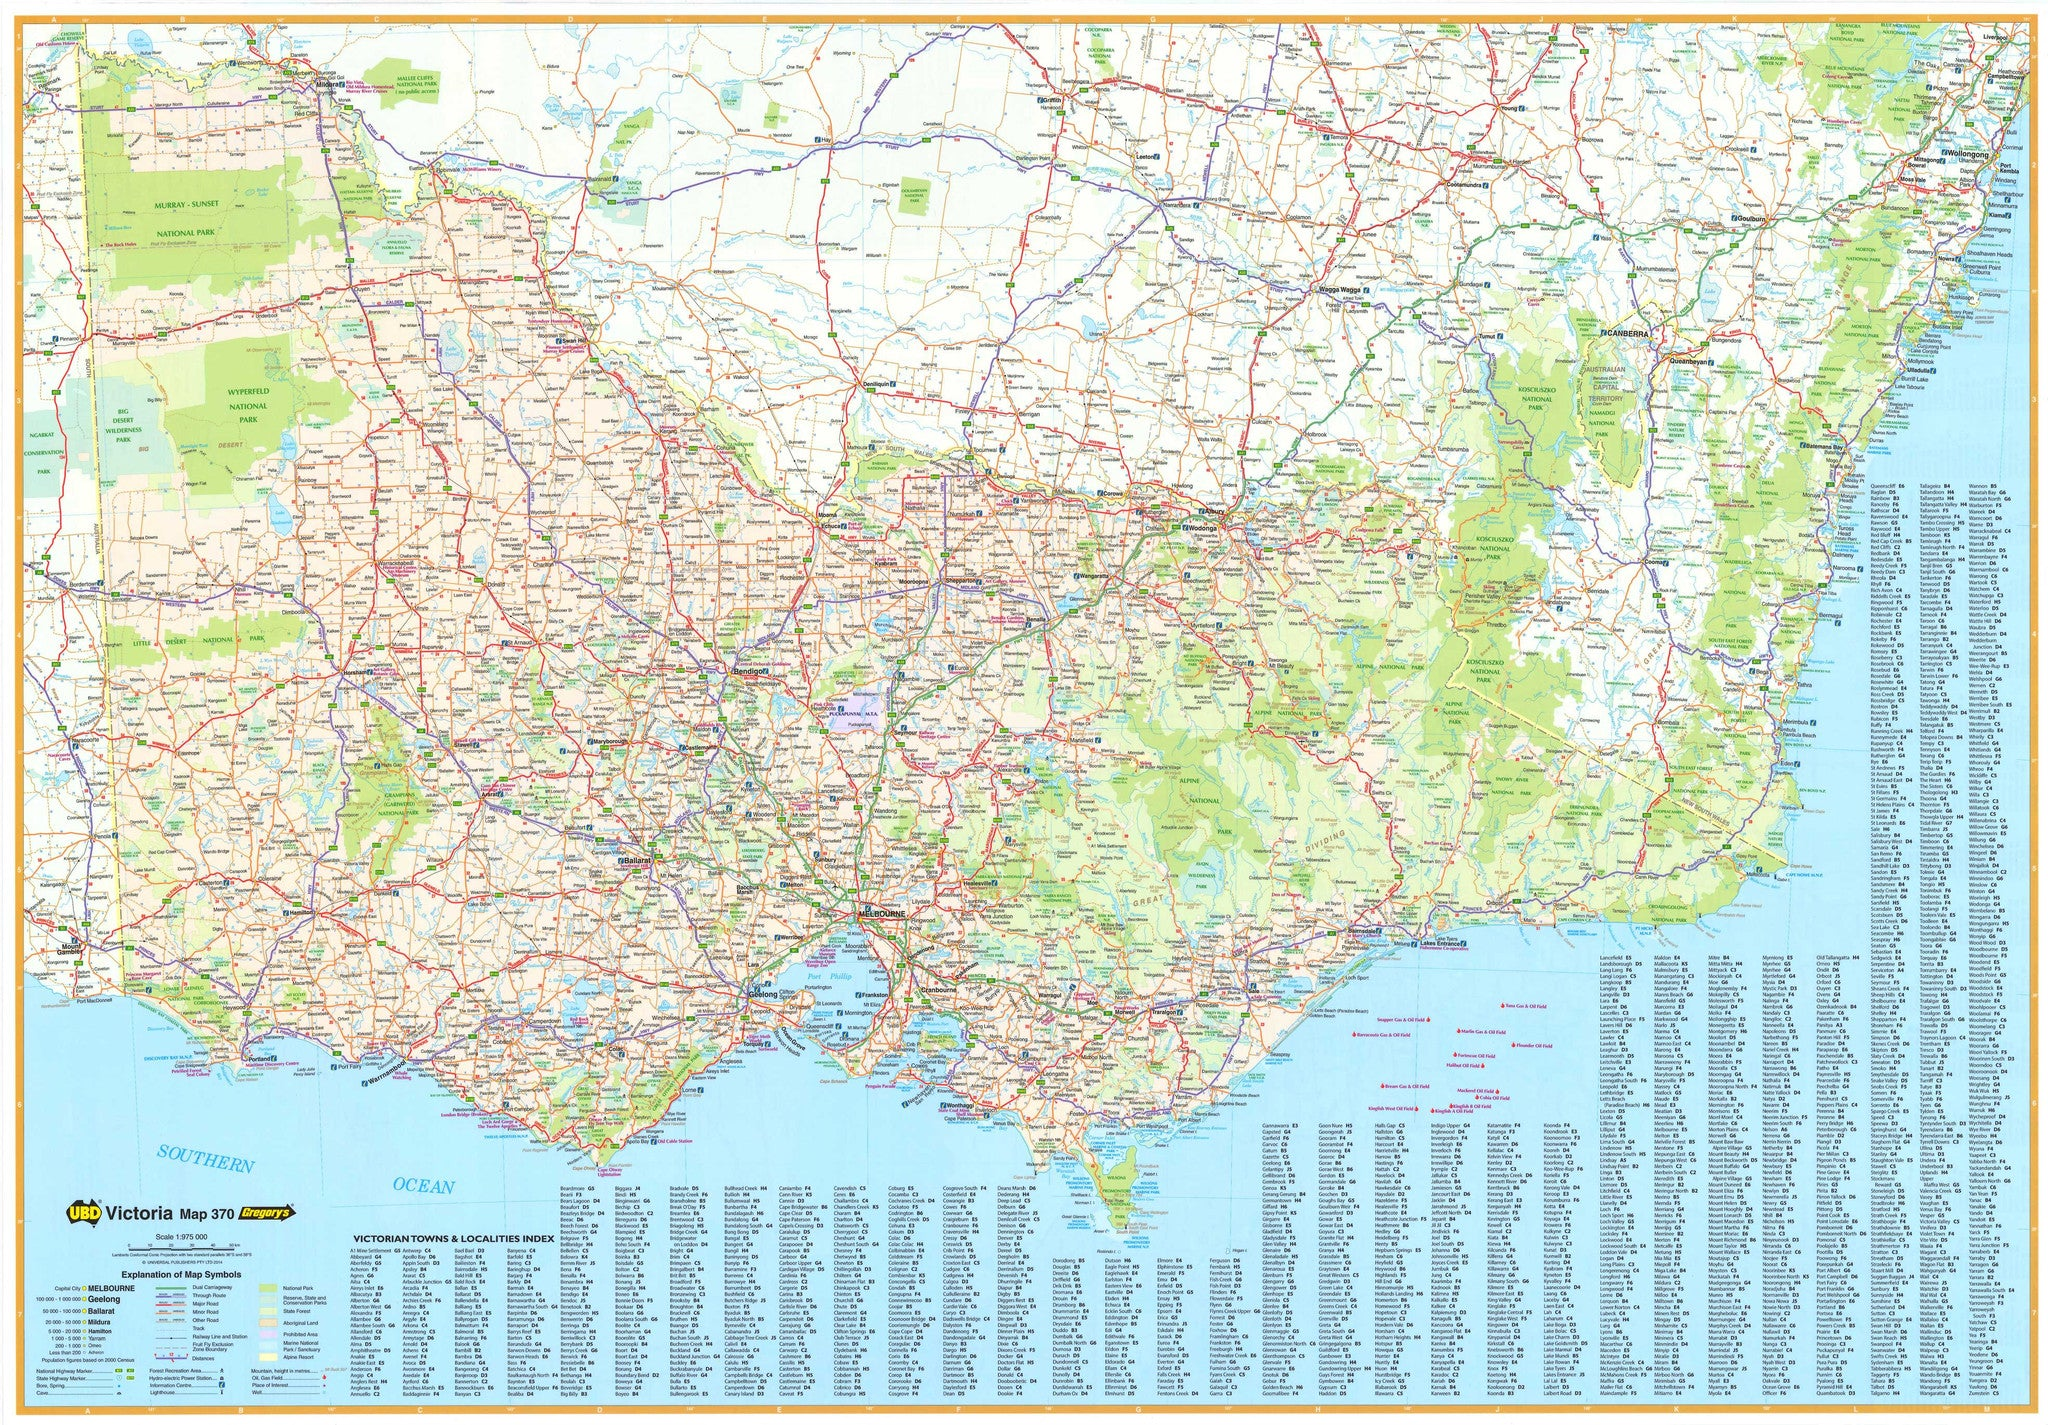 Victoria State Map UBD 370, Buy Maps of ...